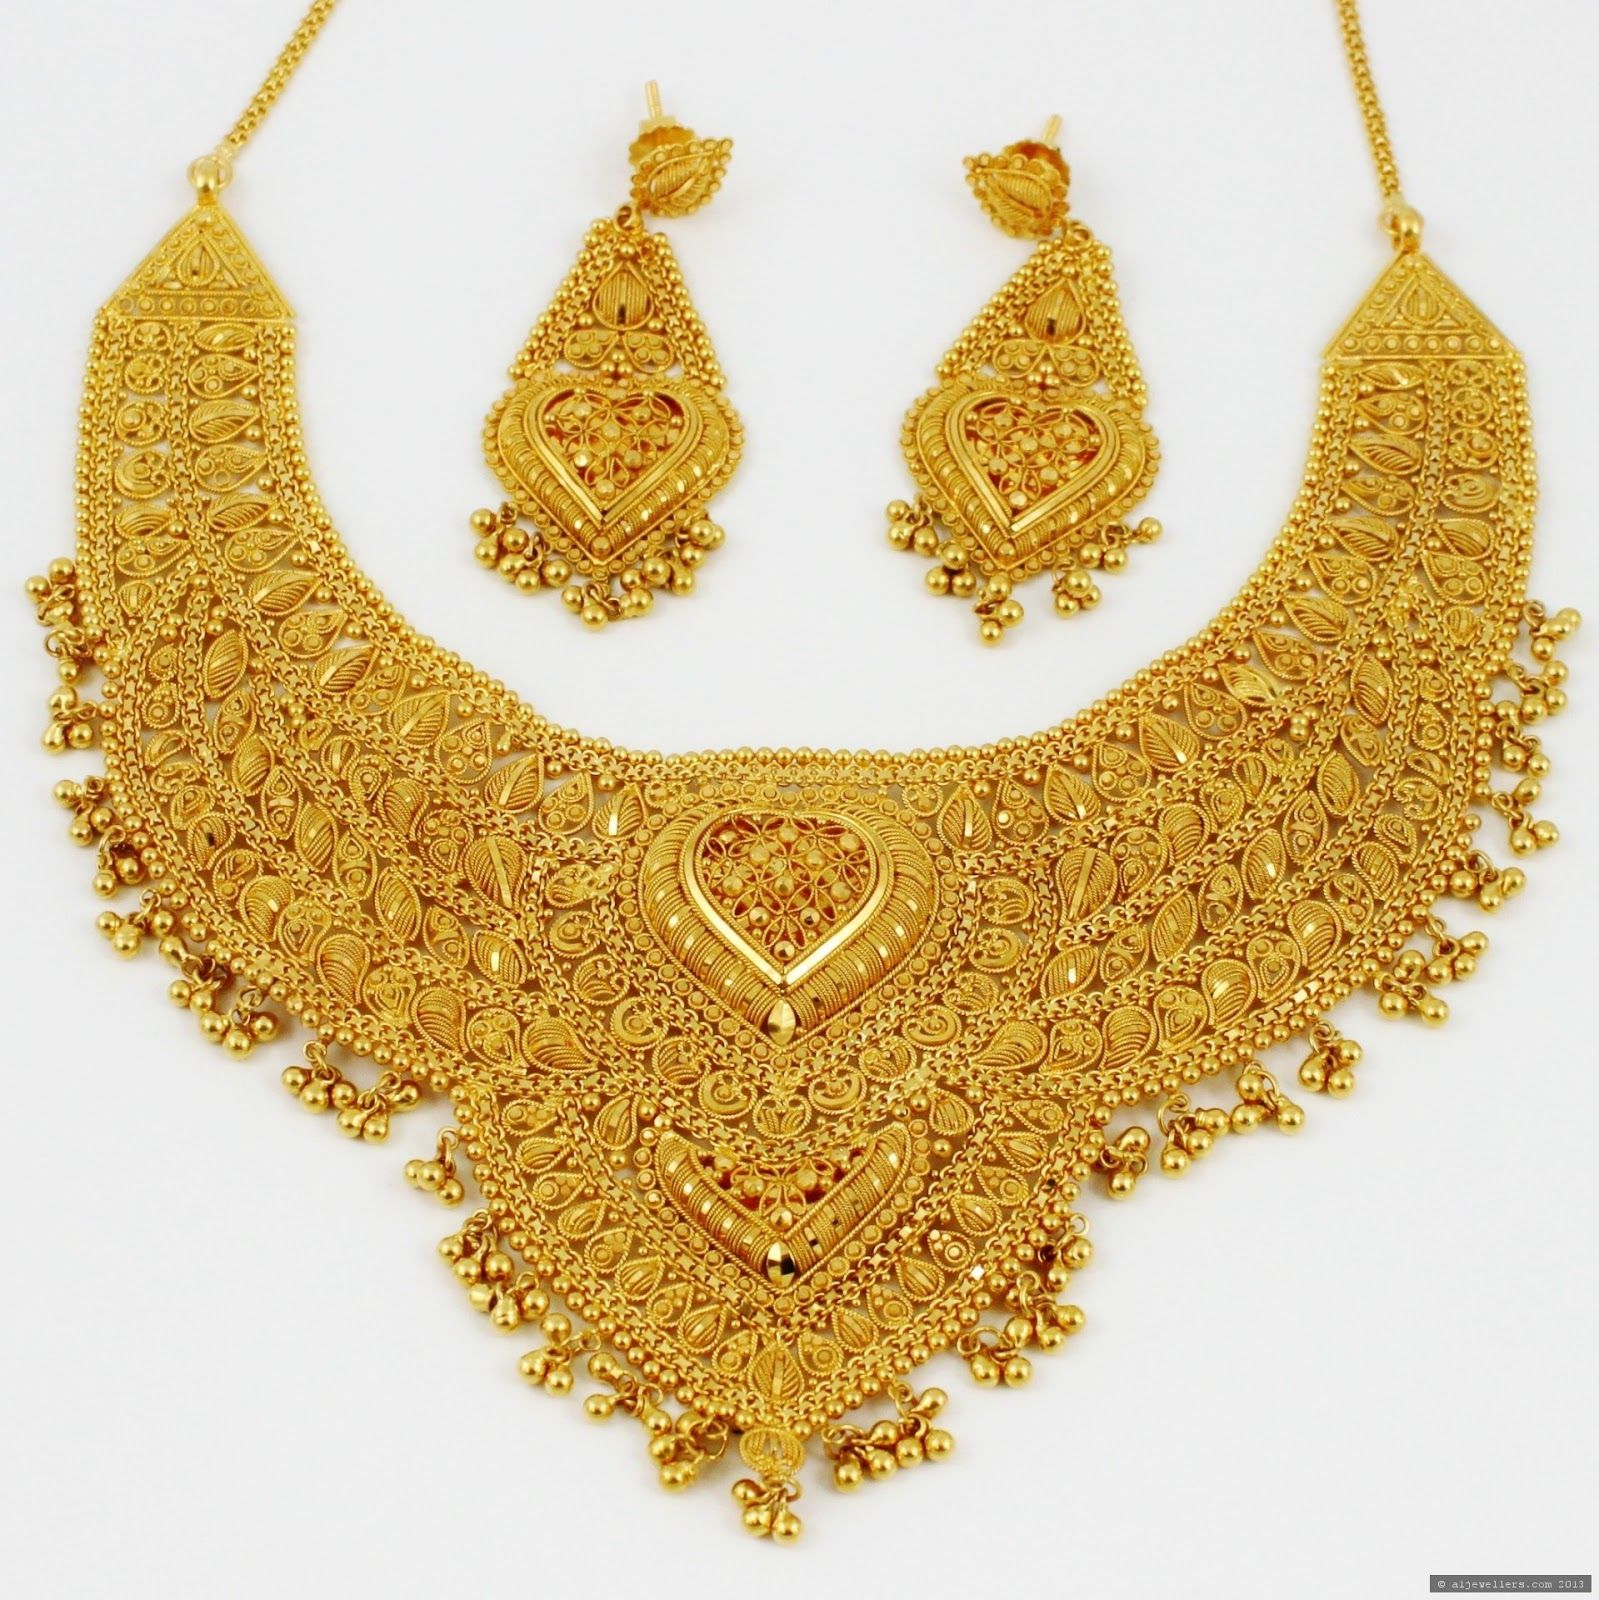 jewellery musaddilal designs jewels south necklace jewellers indian gold sons design india